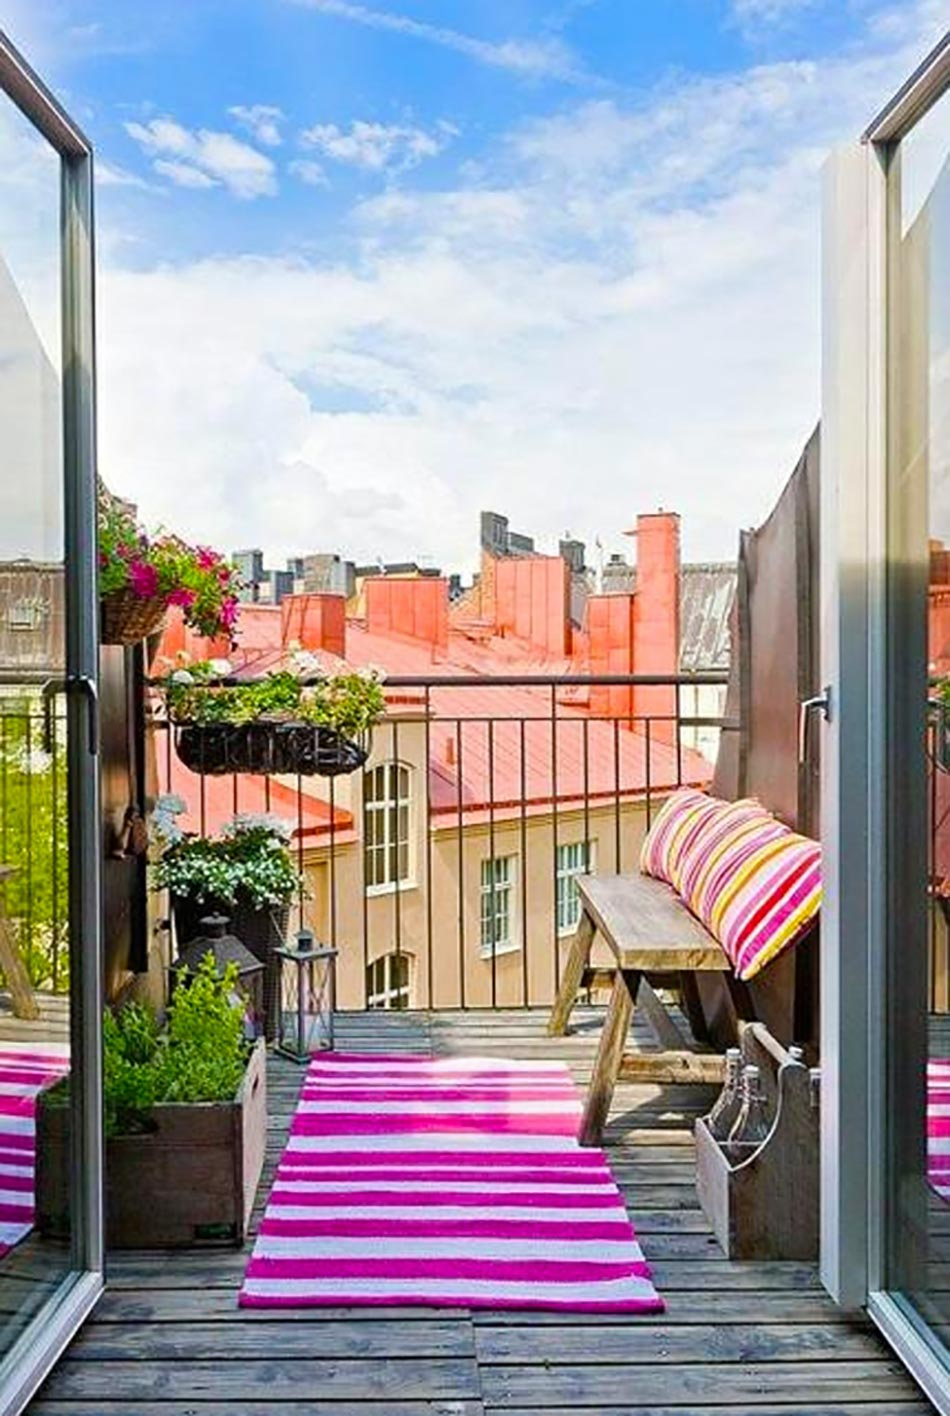 Petits balcons de ville l inspiration nordique for Amenager son jardin rustica